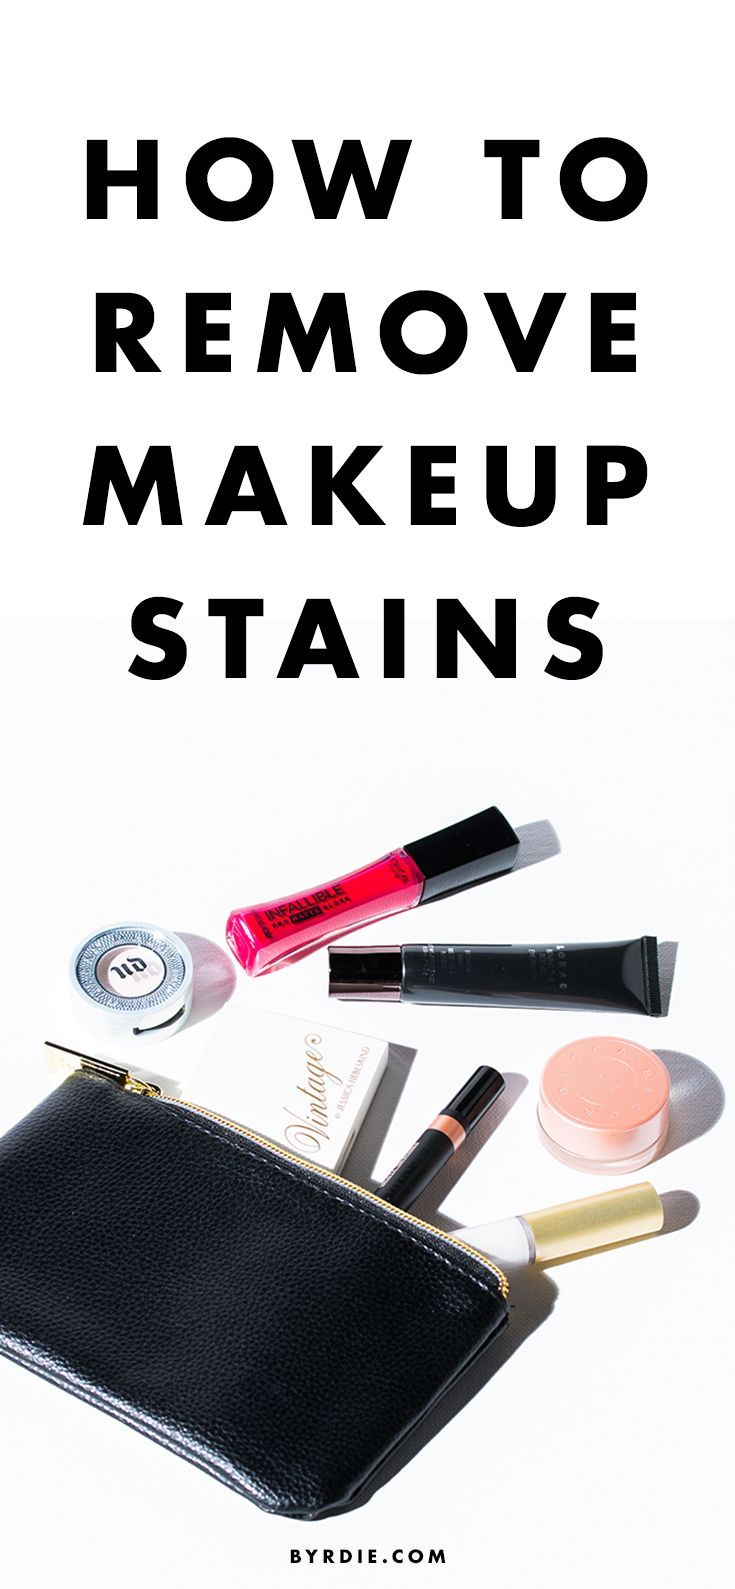 How to Get Rid of Every Kind of Makeup Stain, ASAP